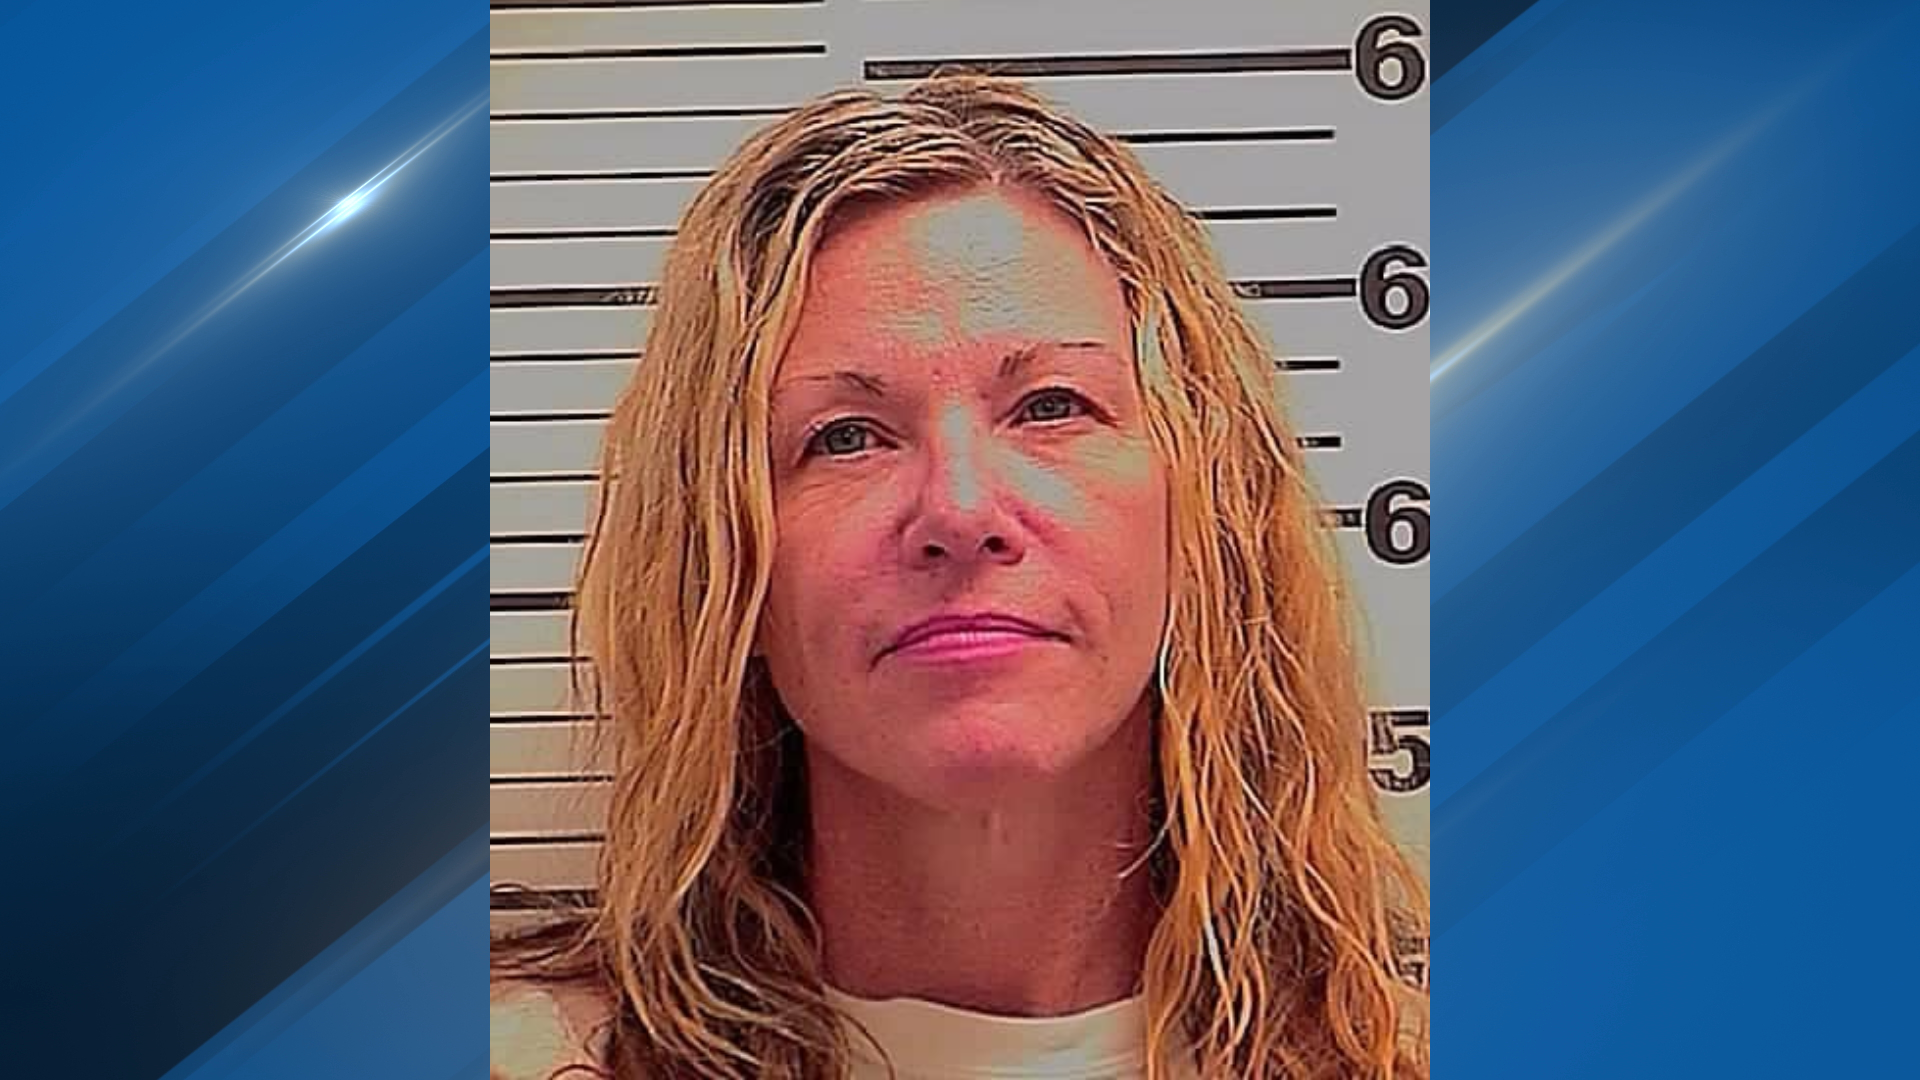 A local woman who spent time with Lori Vallow Daybell in the Madison County Jail is sharing details about the experience for the first time. (Photo: Madison County Jail){ }